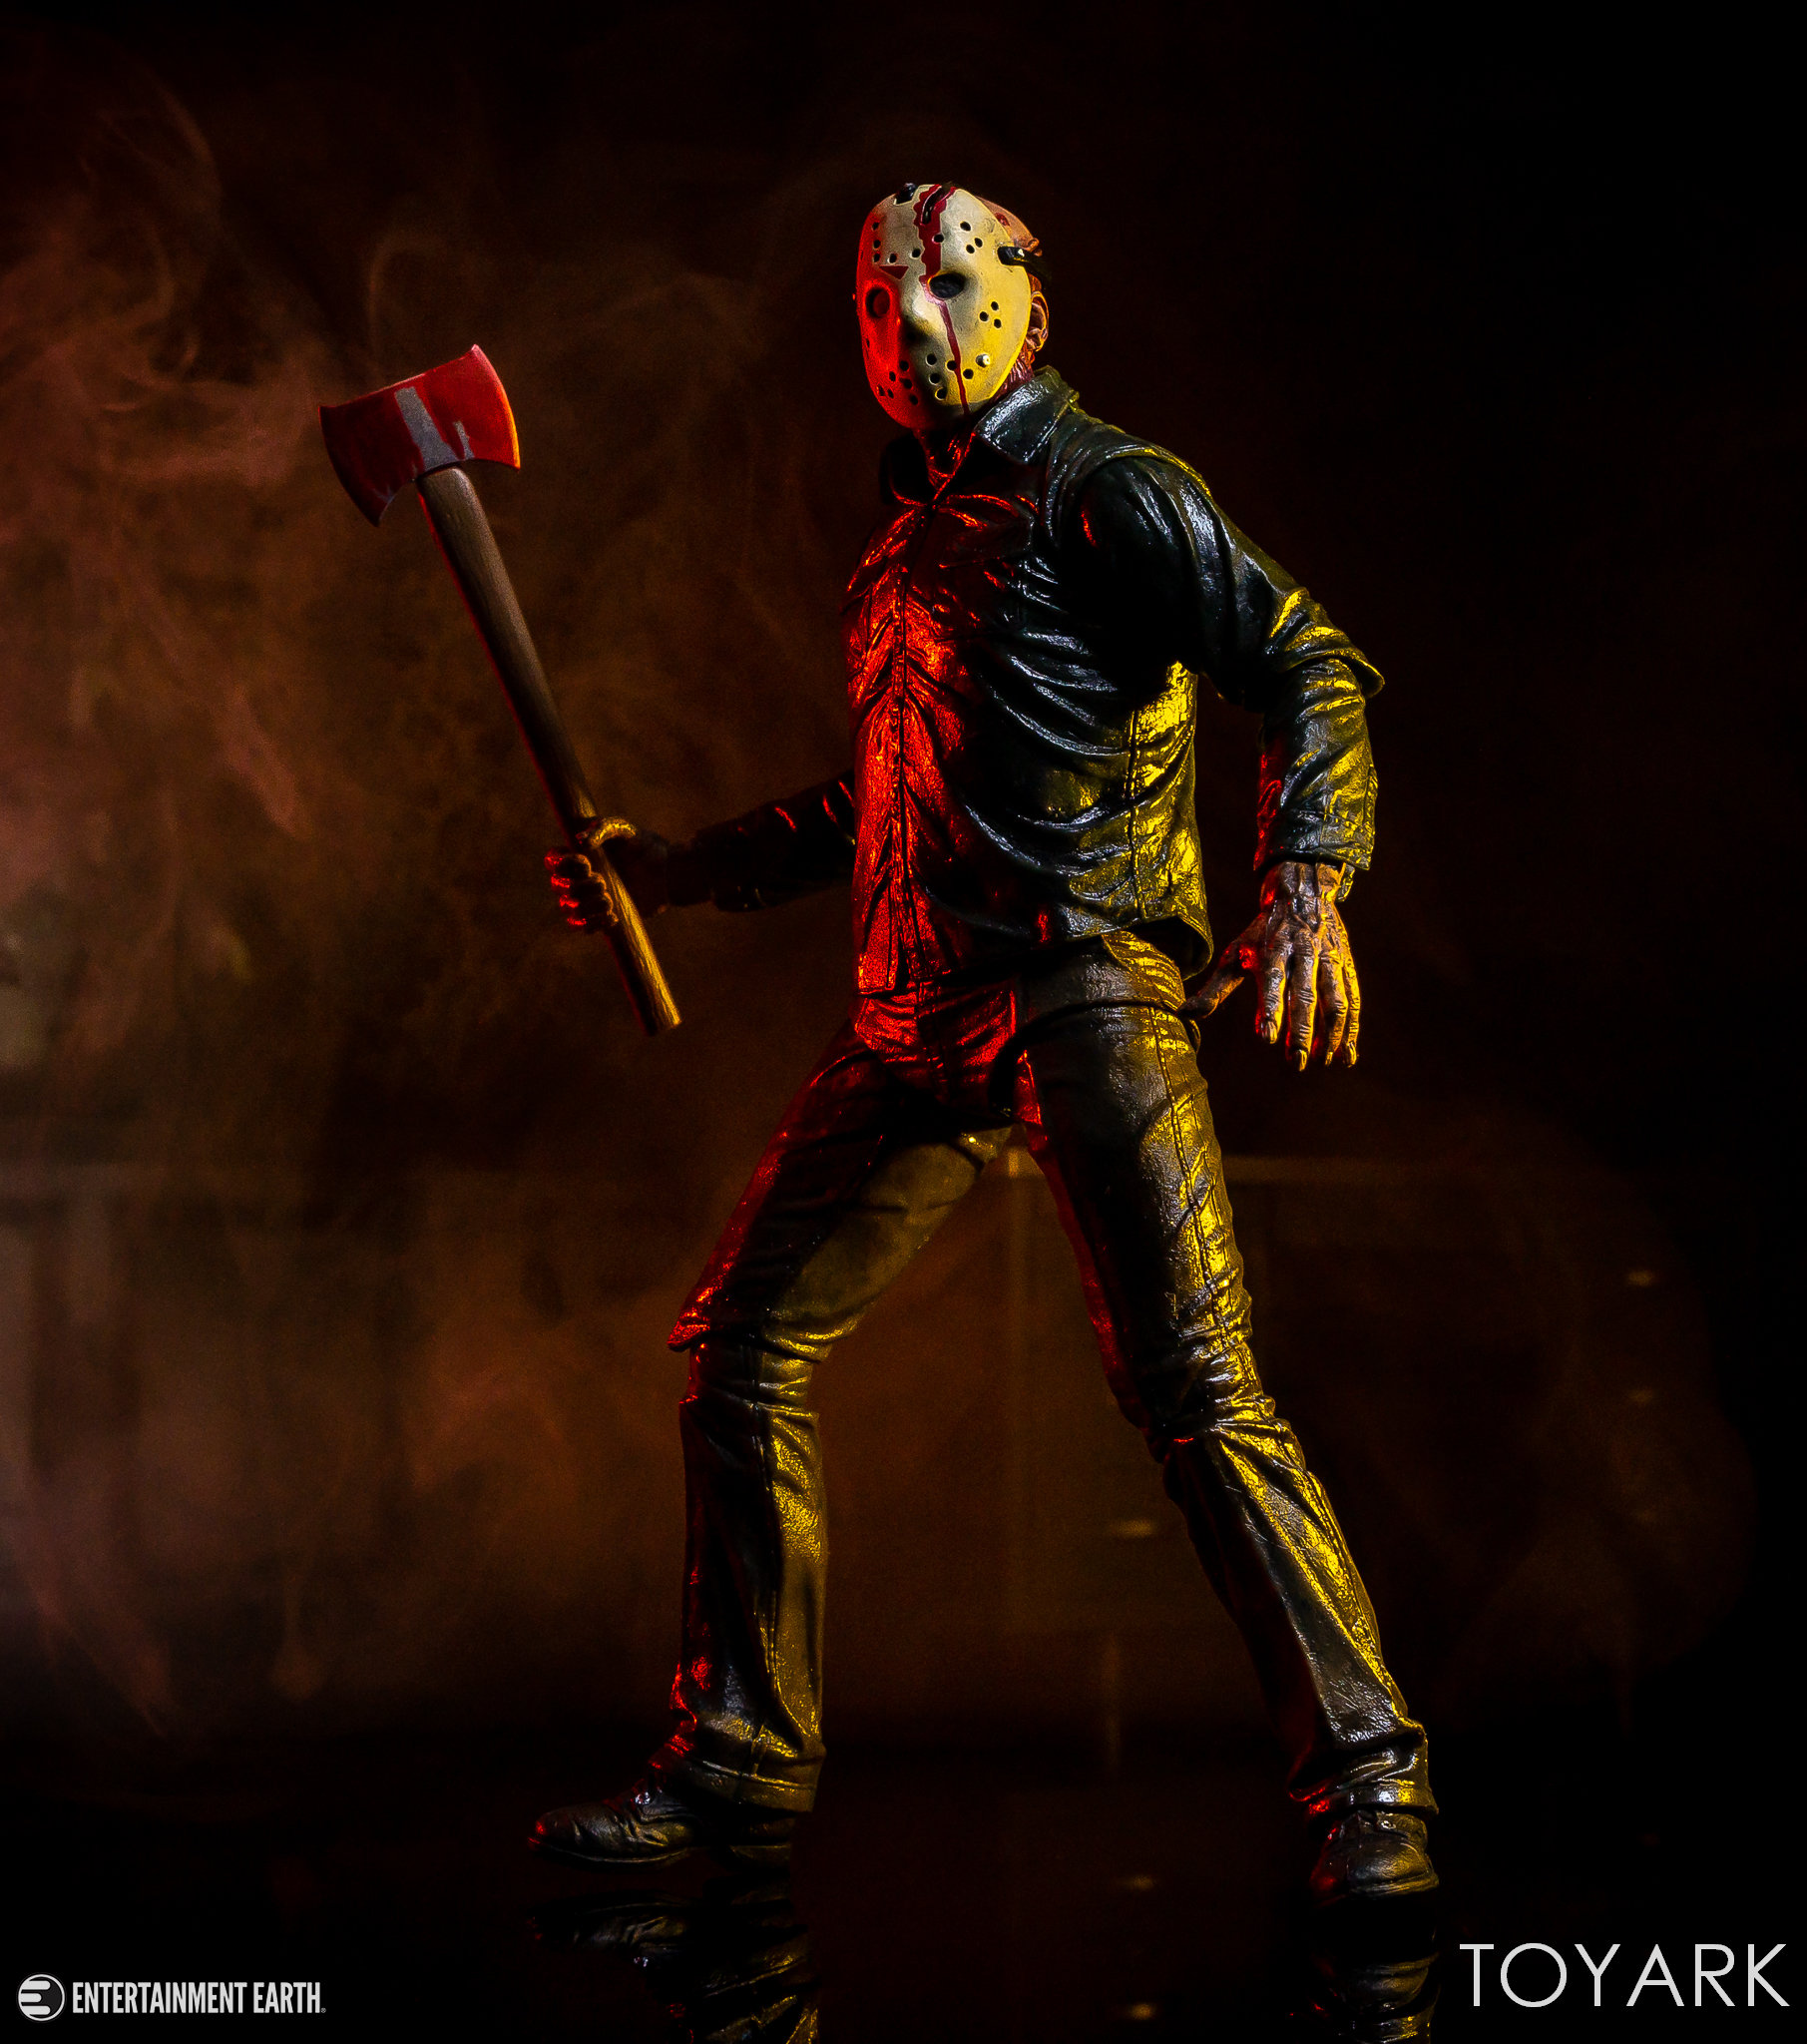 https://news.toyark.com/wp-content/uploads/sites/4/2018/10/NECA-Ultimate-Dream-Jason-035.jpg